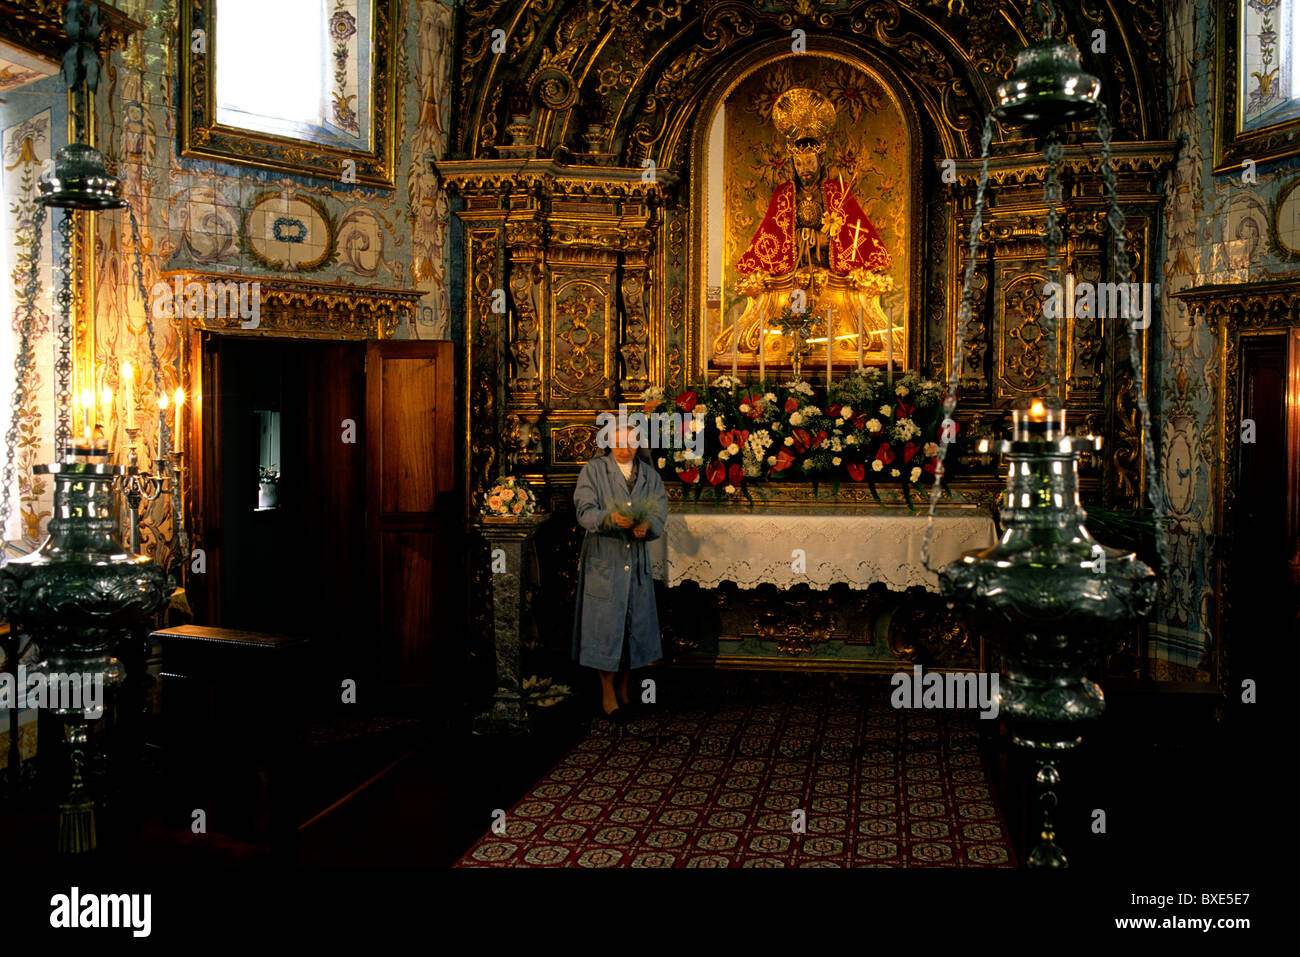 The gilded interior of the Chapel of Nossa Senhora da Esperança in Ponta Delgada on São Miguel island - Stock Image